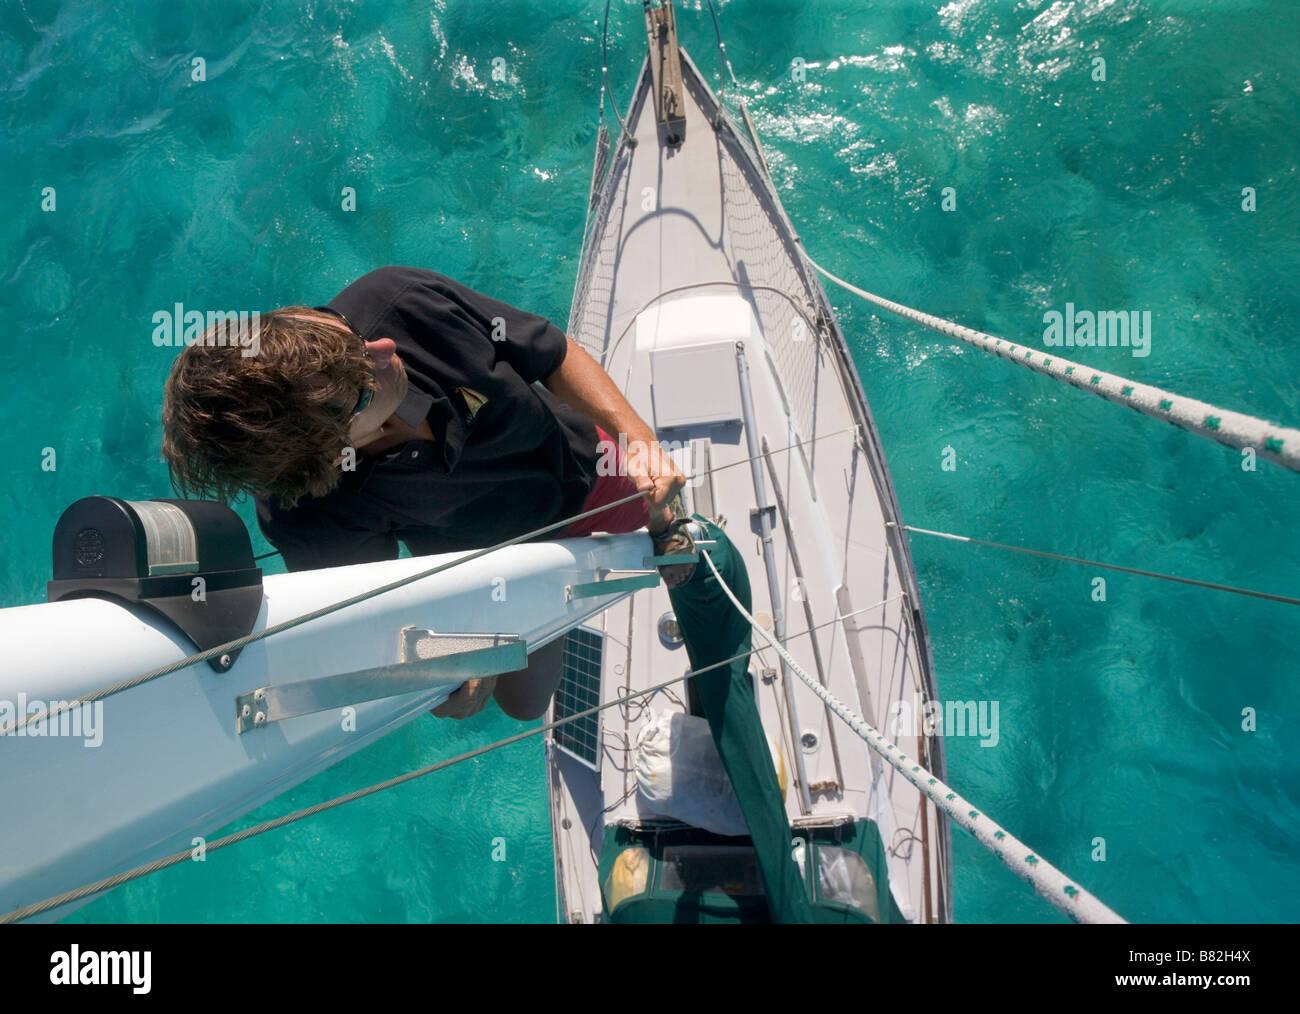 A sailor looks out from halfway up the mast on a cruising sailboat in the Caribbean - Stock Image